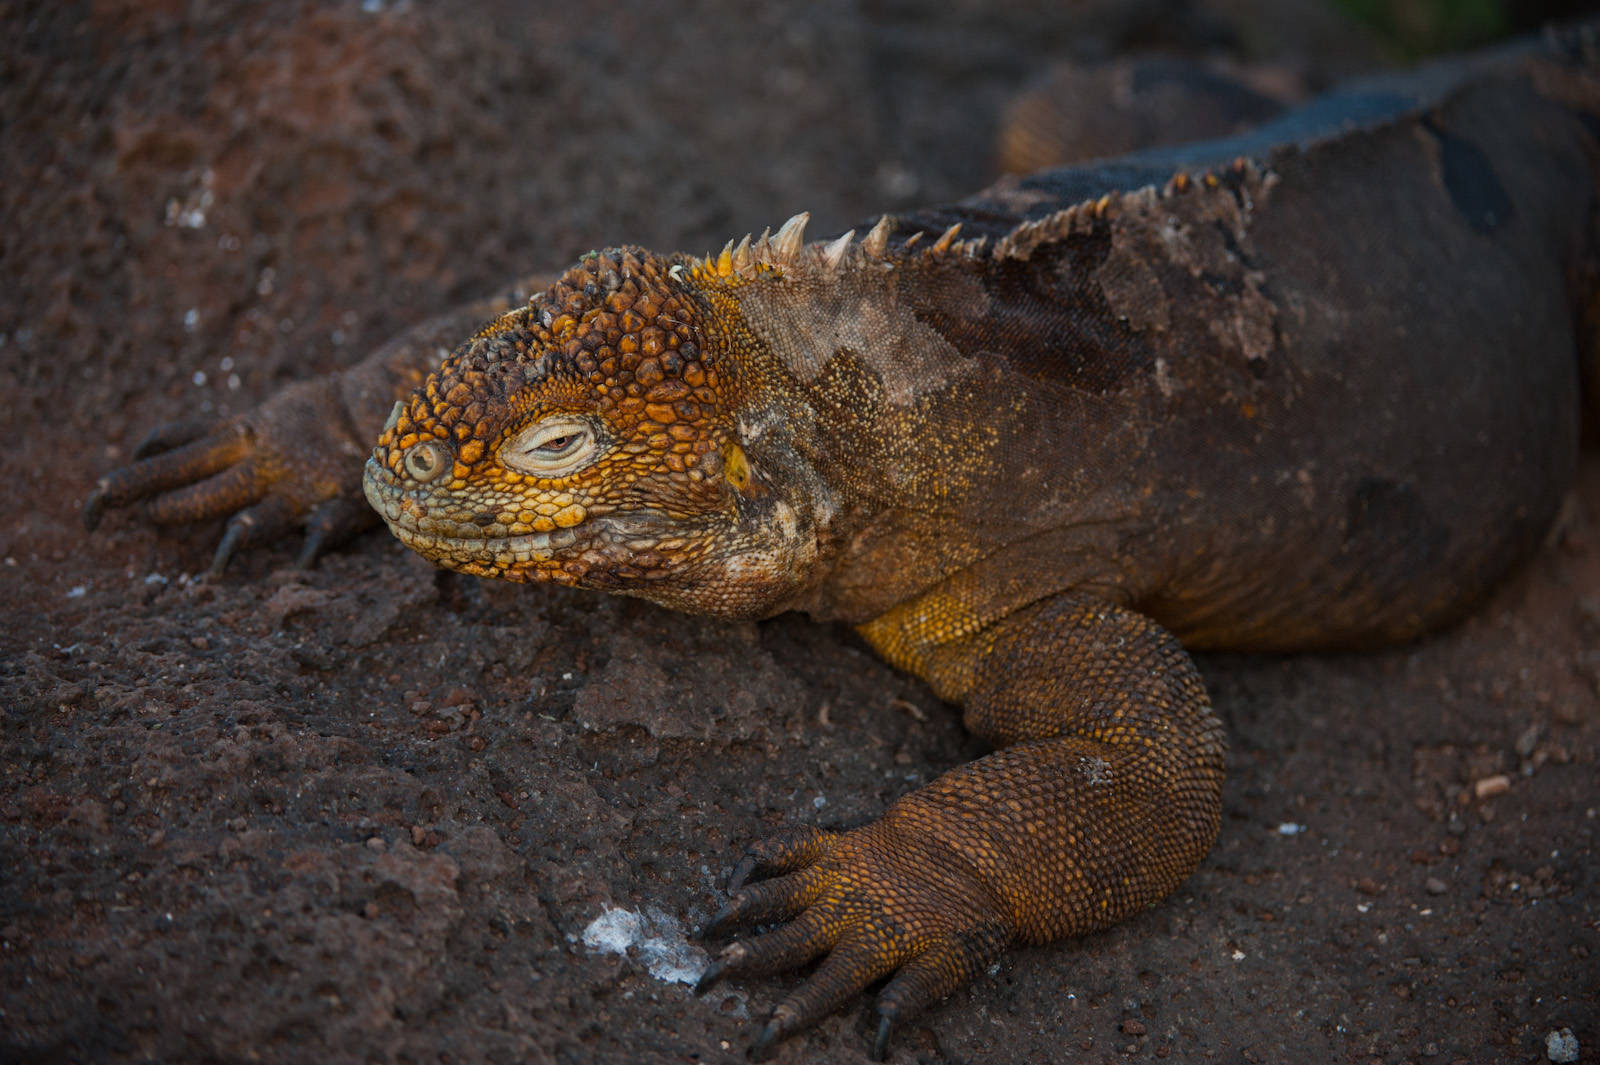 Photo: Galapagos land Iguana (Conolophus subcristatus) on North Seymour Island, part of Galapagos National Park.